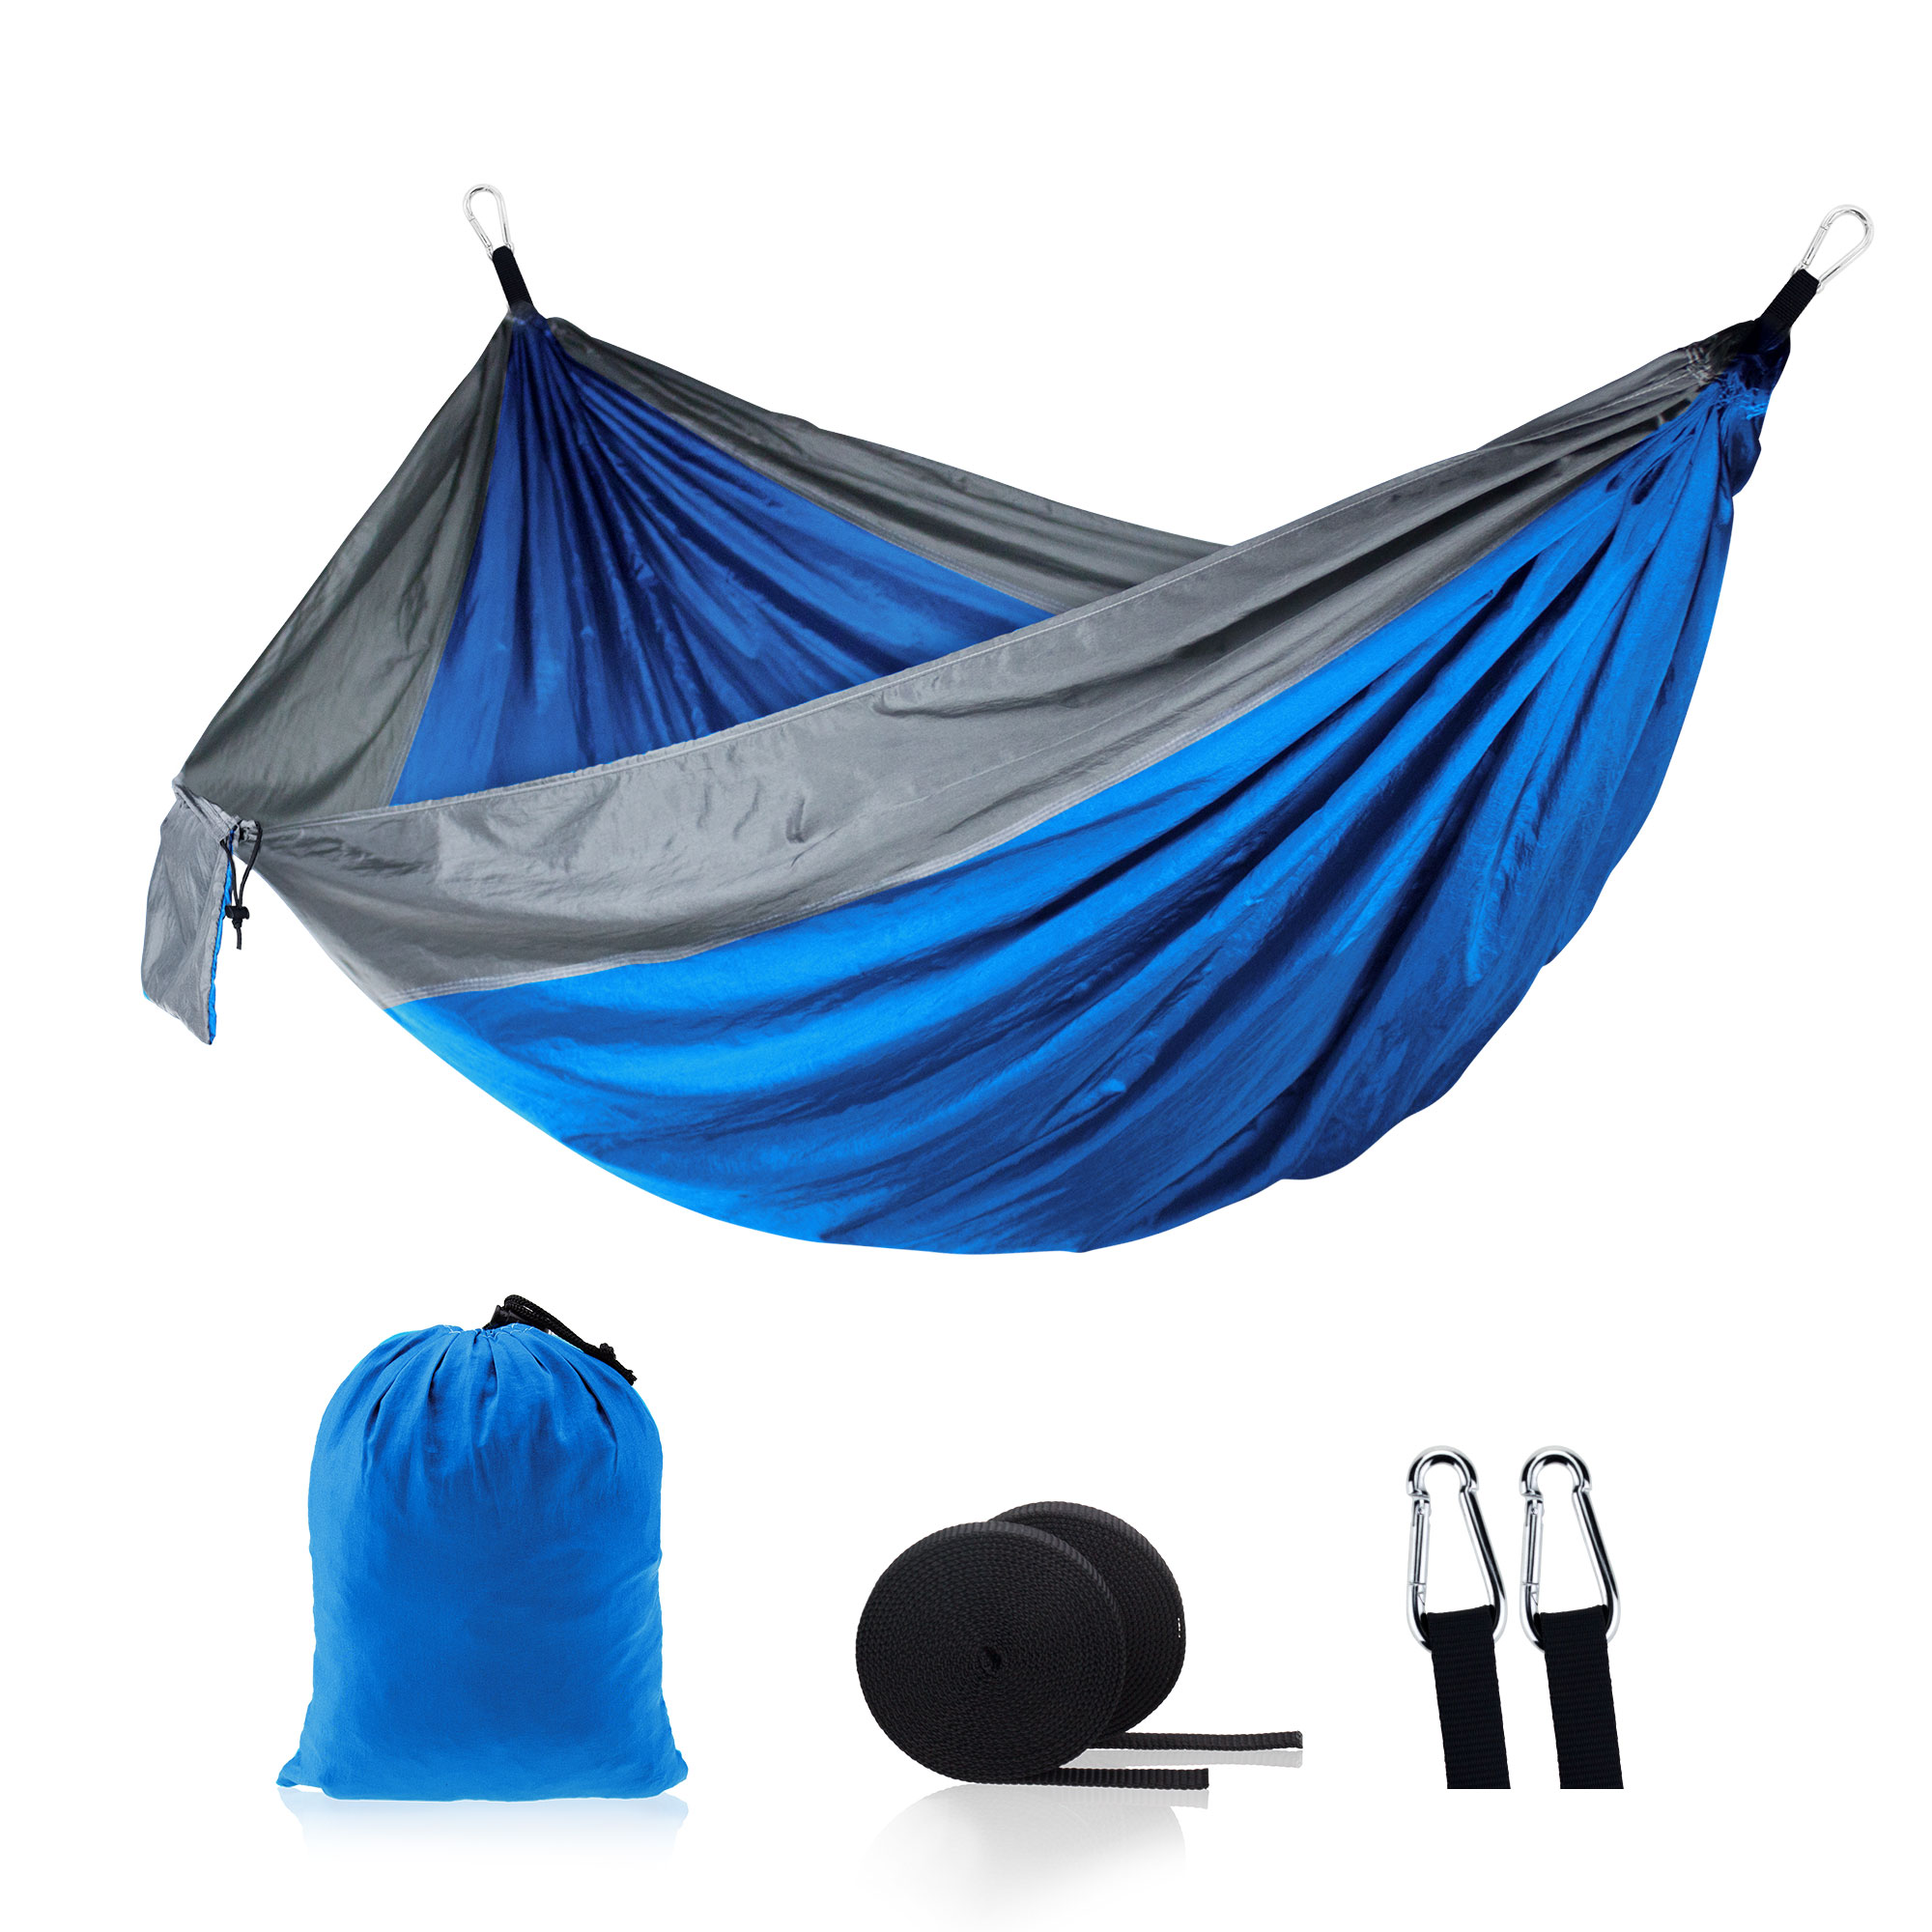 Fabric Hammock Swings Ultralight Outdoor Parachute Camping Nylon Portable 2-Person Rain title=